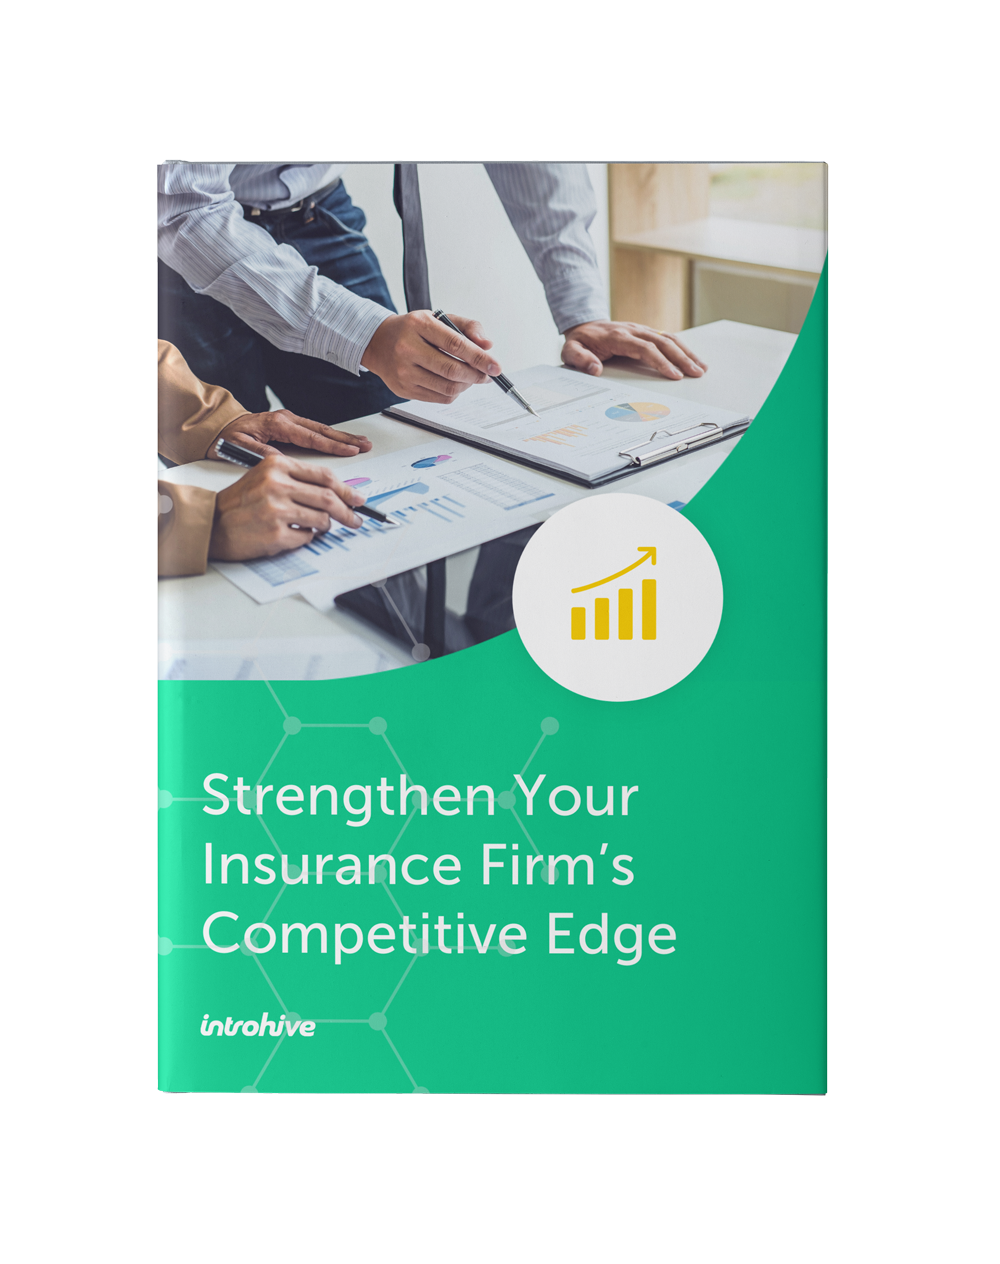 Strengthen-Your-Insurance-Firm's-Competitive-Edge-book-mock (1)